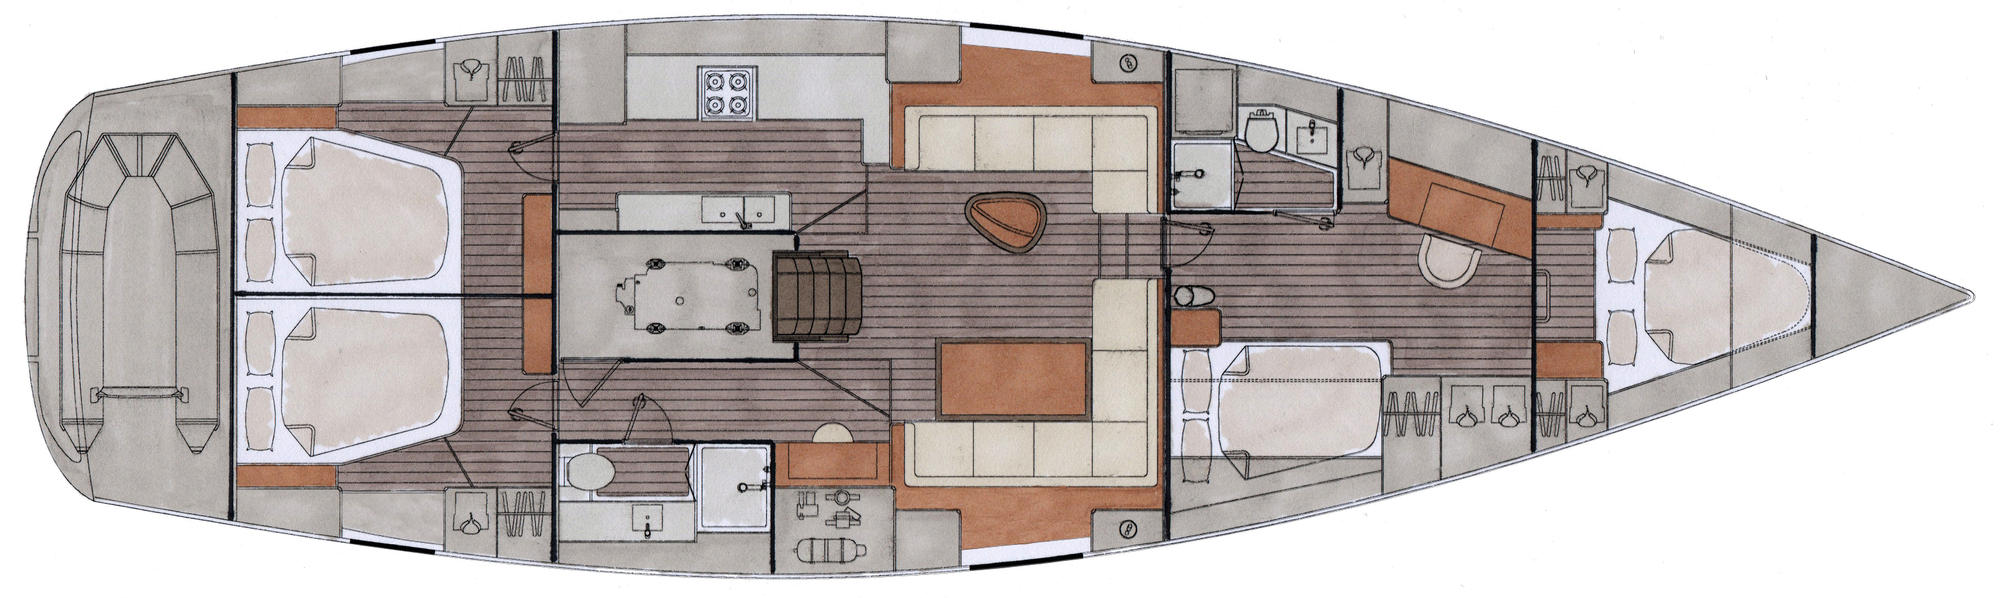 Conyplex Contest 62 CS - contest_62cs_interior_layout_e.jpg